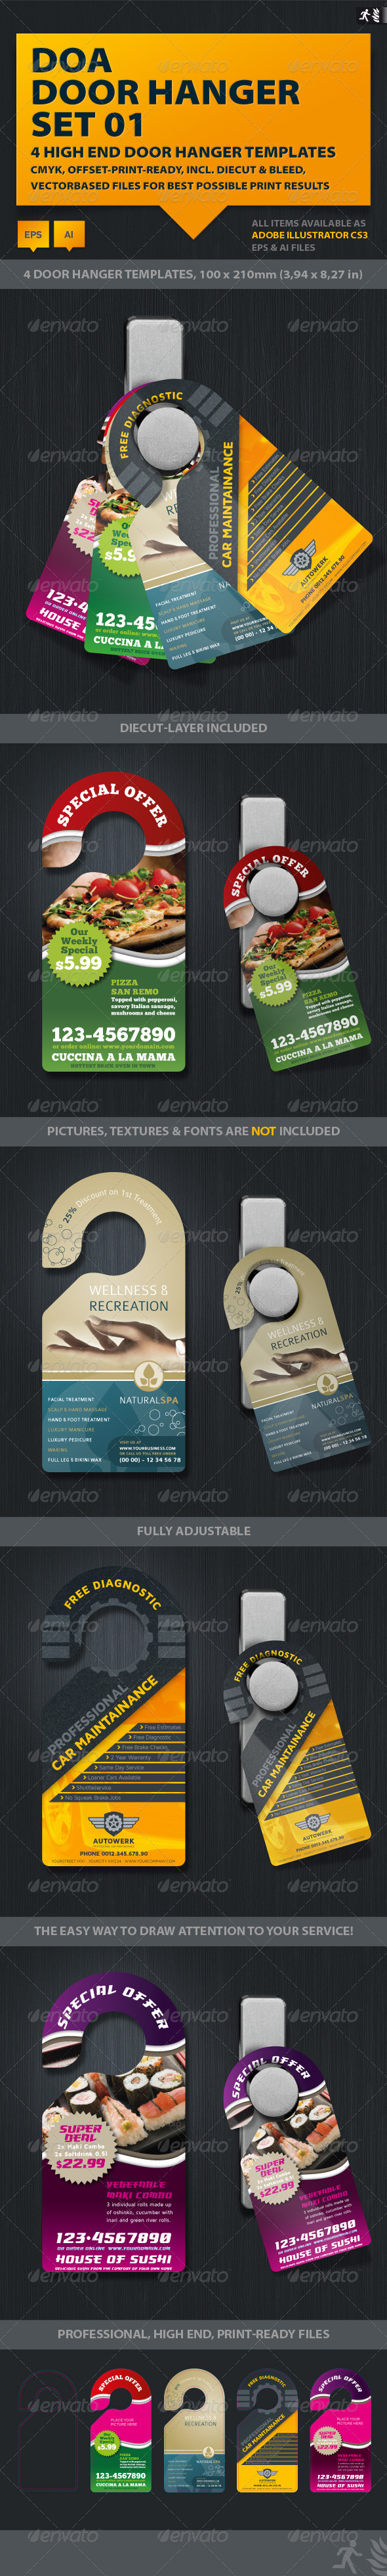 DOA Door Hanger Set 01 - Miscellaneous Print Templates